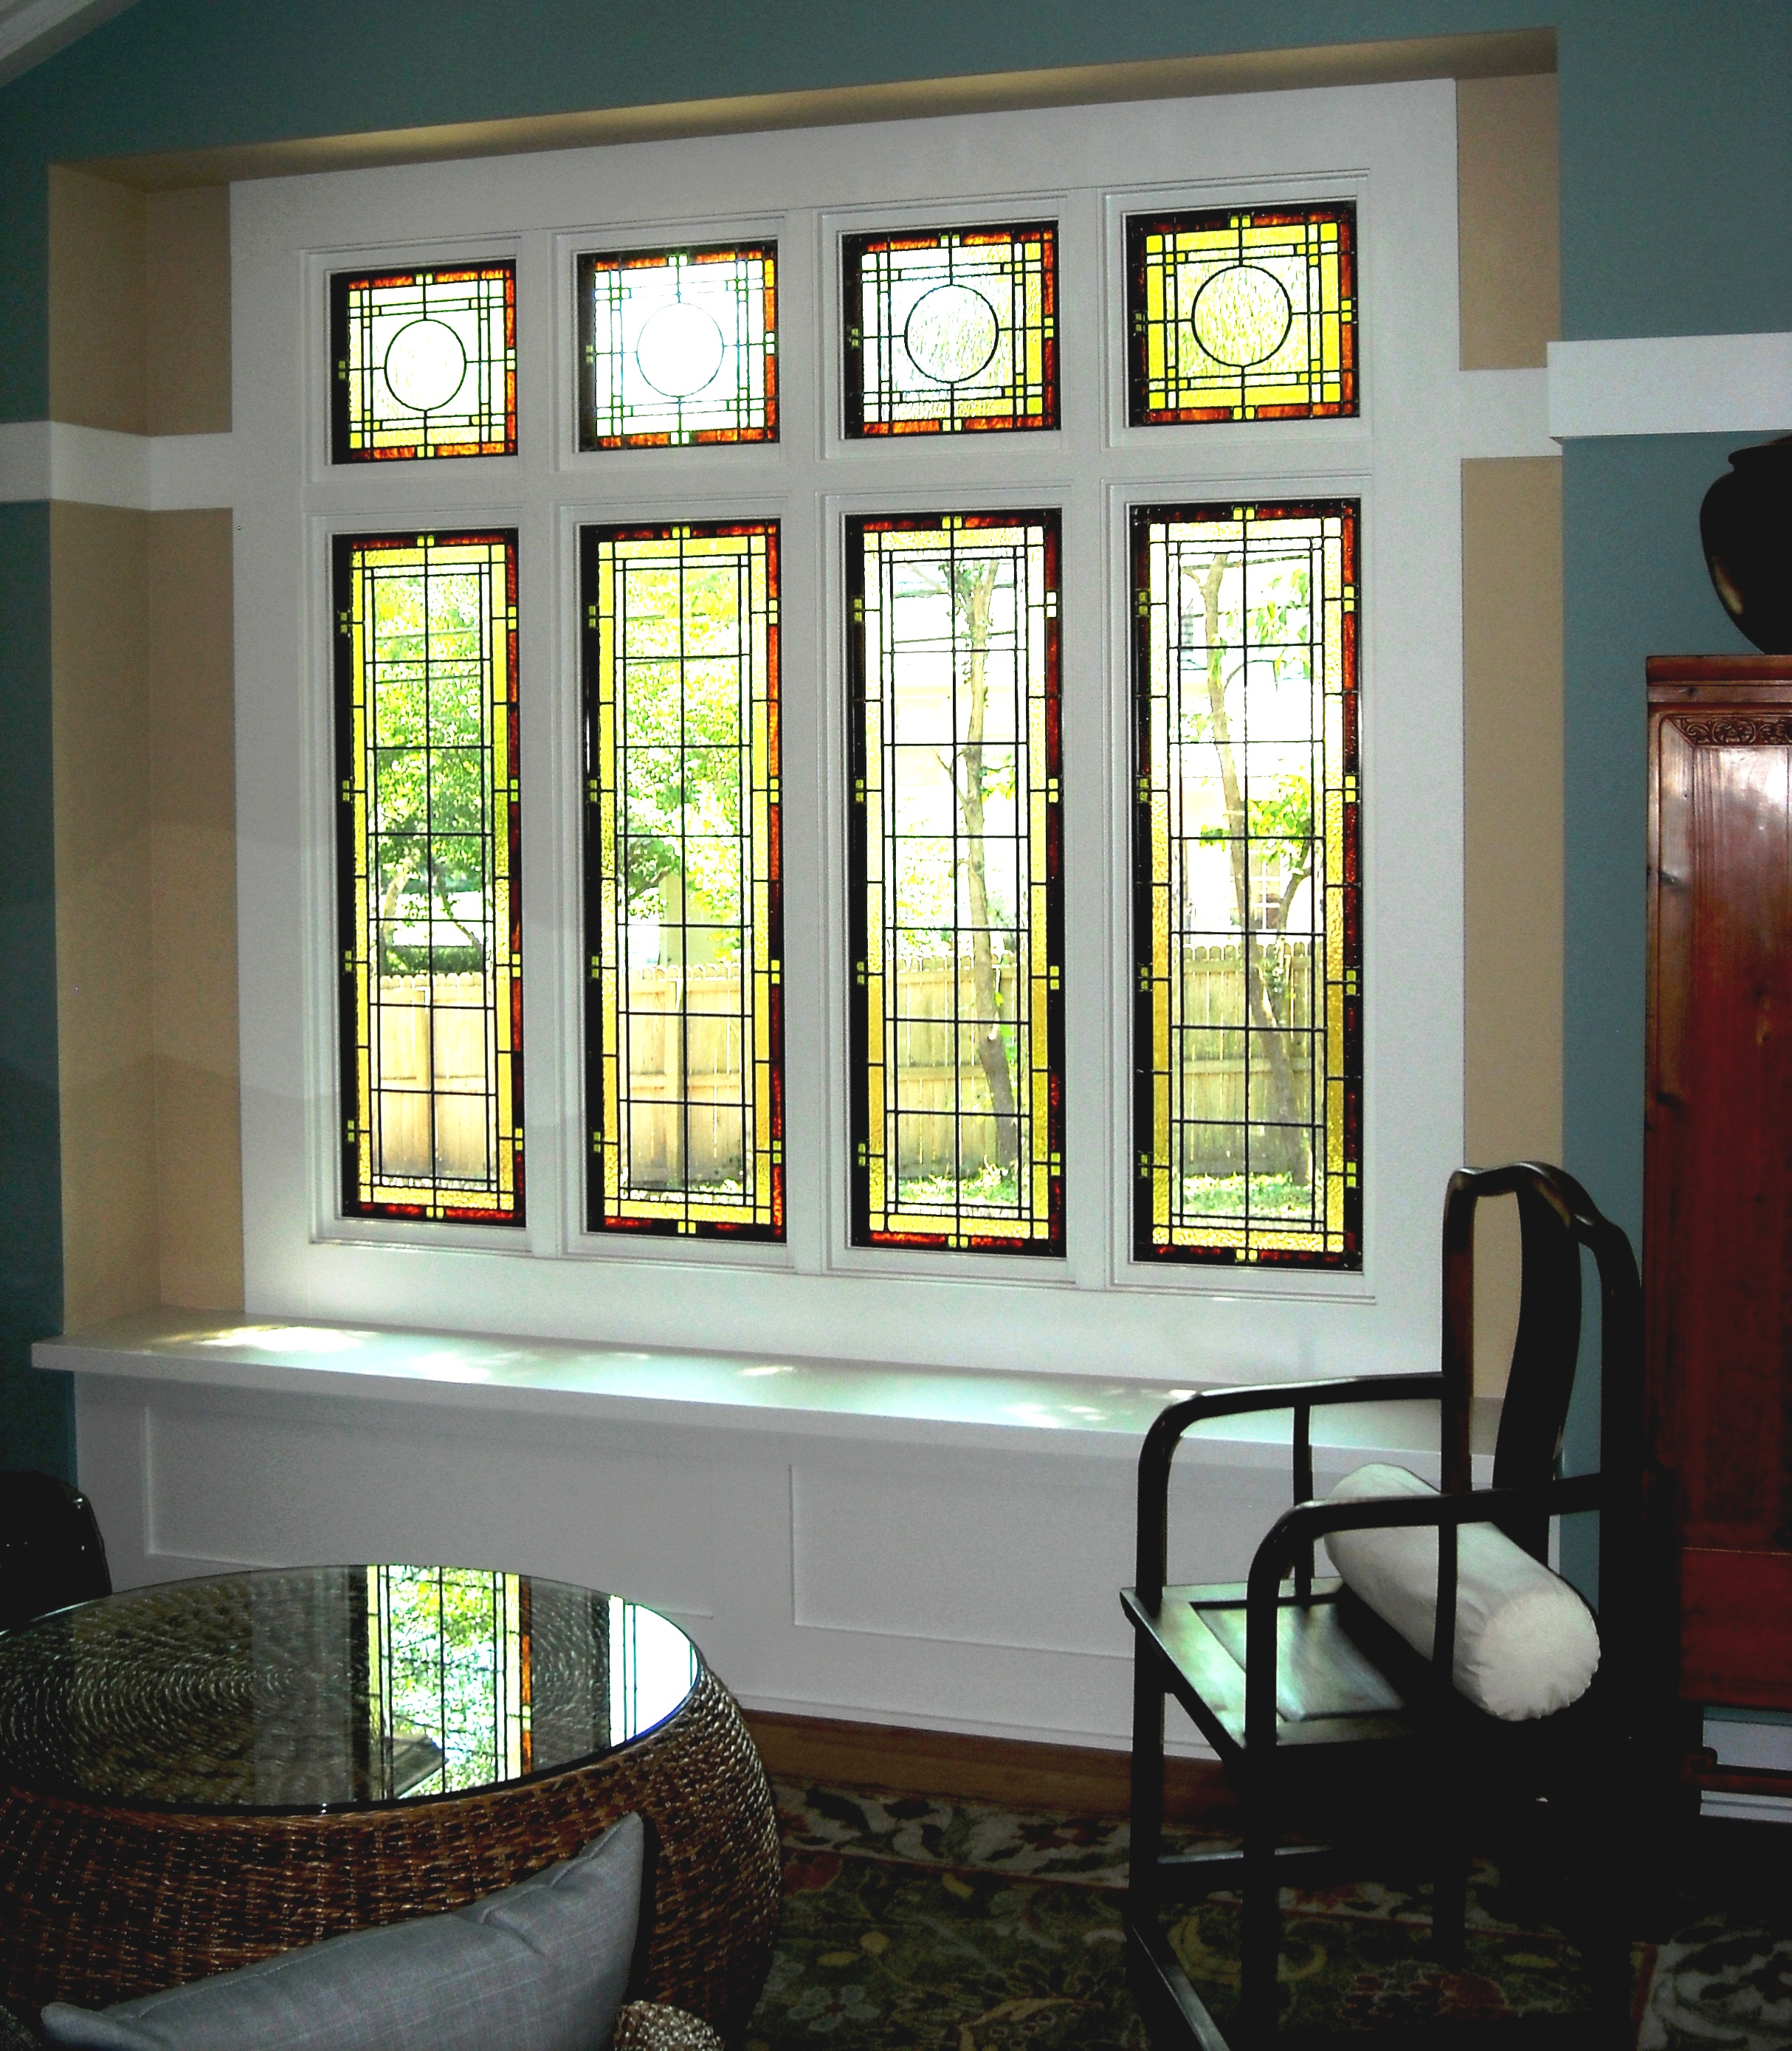 Advantages and disadvantages of stained glass windows for for Window design home